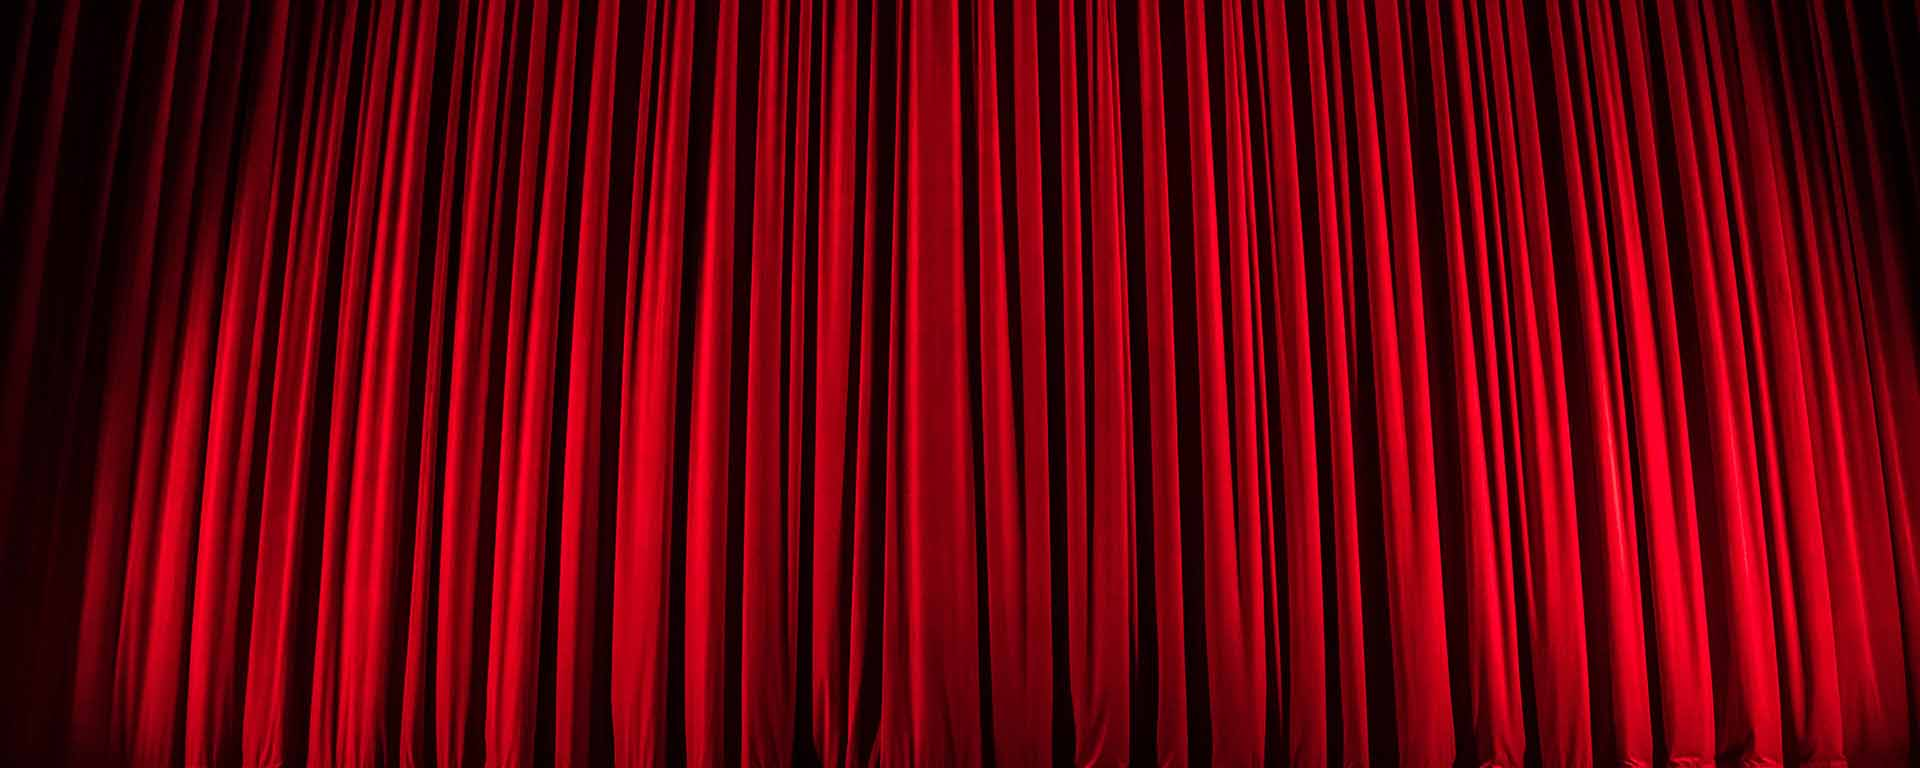 Red curtain on a stage